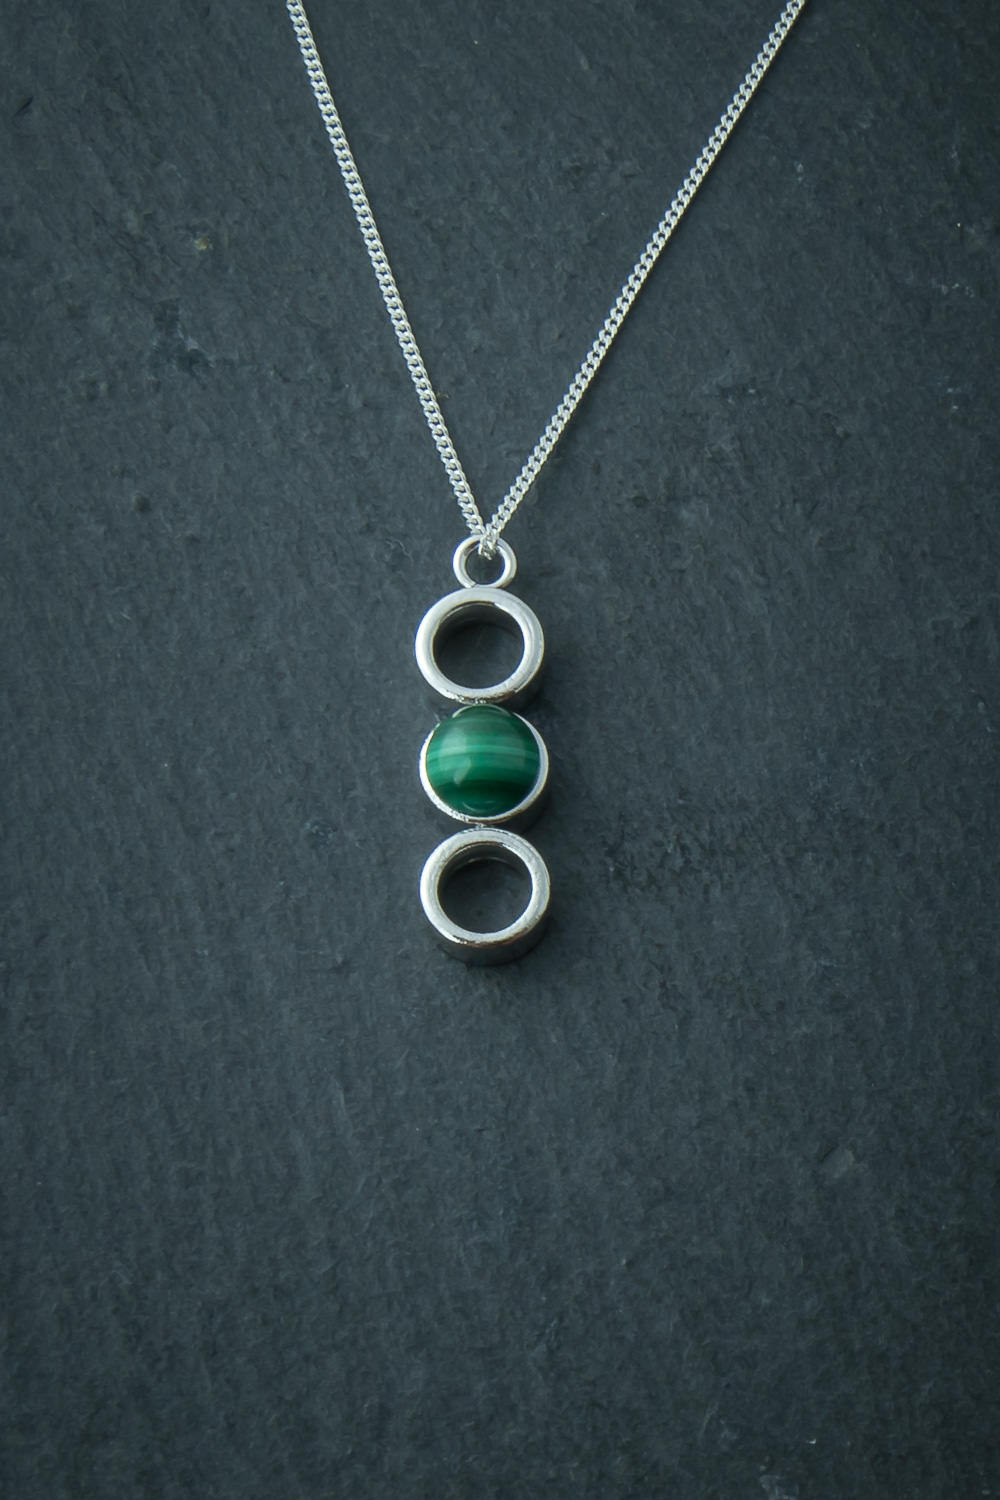 Silver necklace with malachite